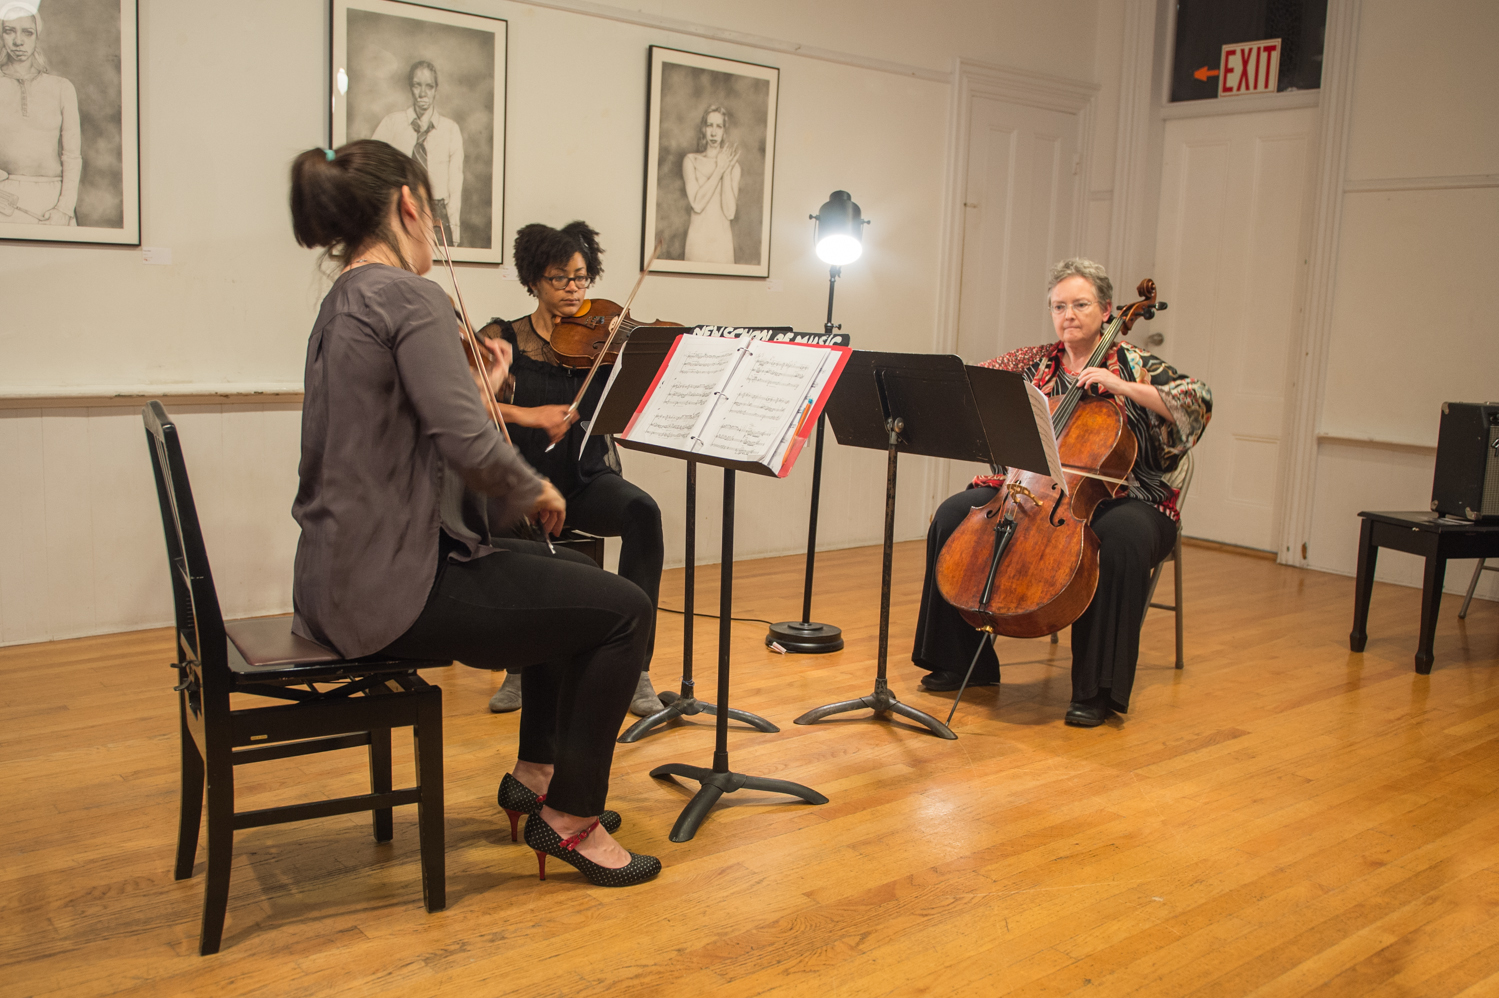 """Left to right: Gabriela Diaz, Ashleigh Gordon and Rhonda Rider performing Tania León's """"A Tres Voces."""" Taryn Wells's graphite drawings hang in the background. New Gallery Concert Series, with Castle of our Skins, Saturday evening at the New School of Music in Cambridge. Photograph Monika Bach Schroeder."""